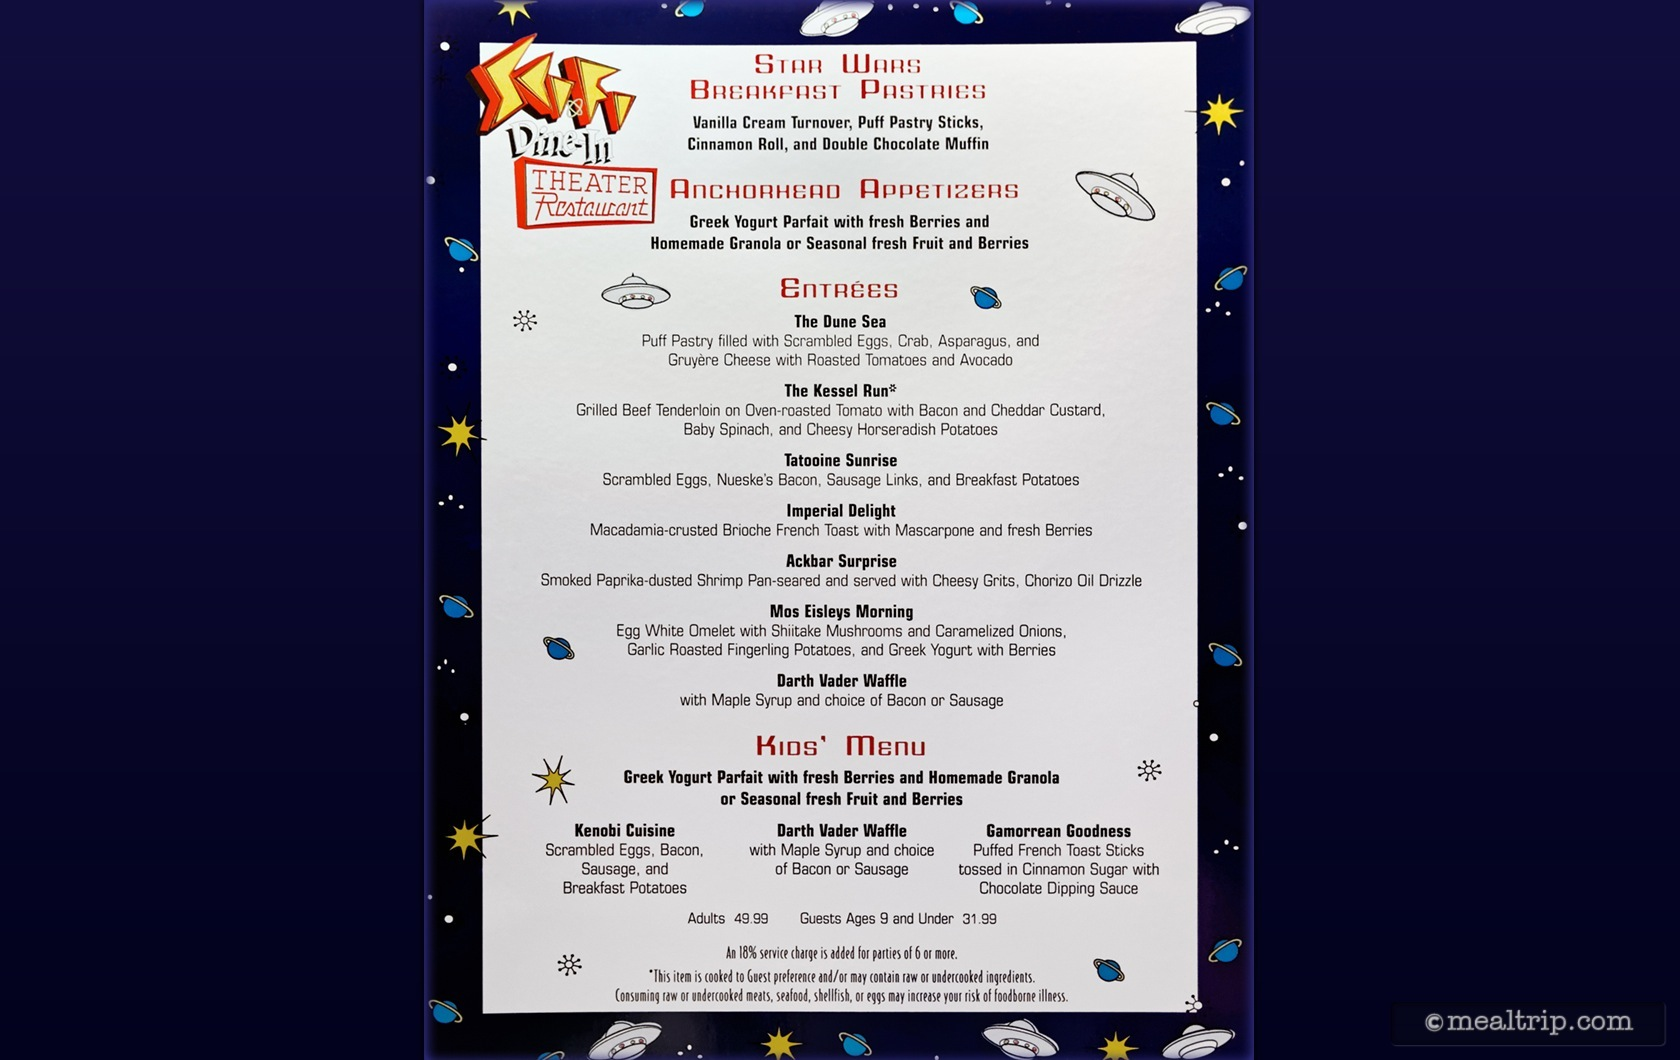 Star Wars Dine In Galactic Breakfast At Sci Fi Reviews And